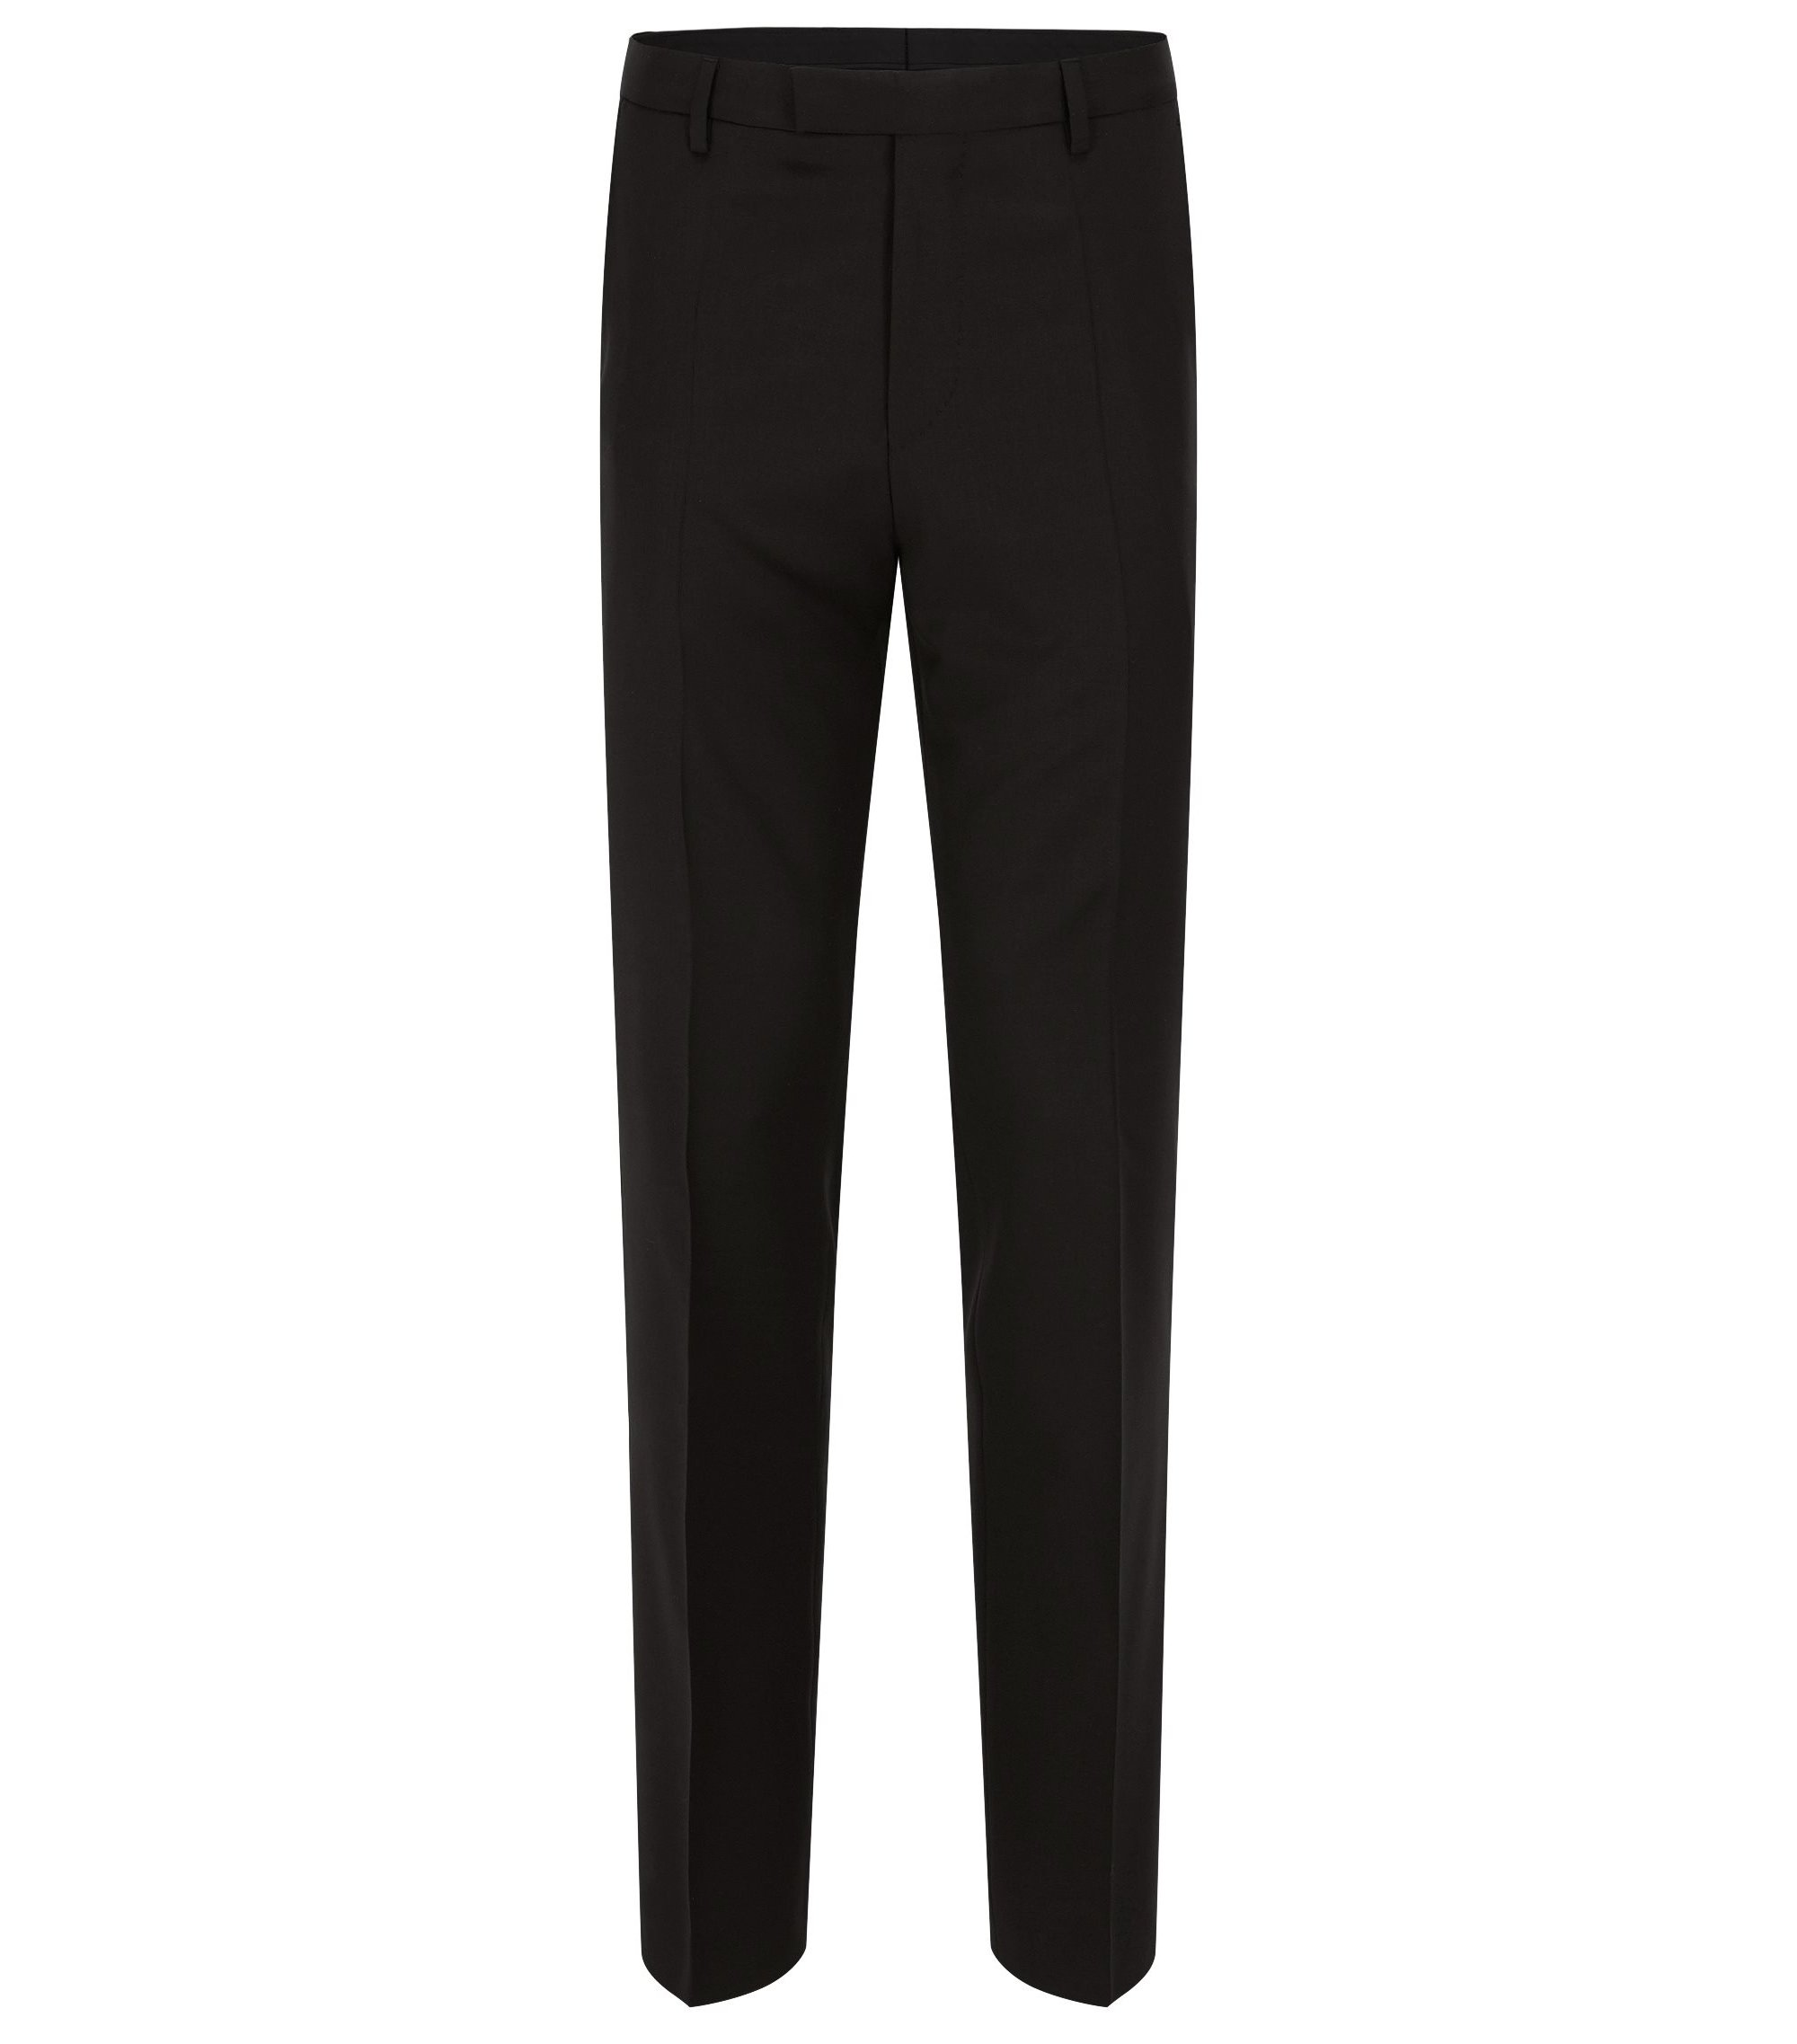 Virgin Wool Dress Pants, Regular Fit | Lenon CYL, Black